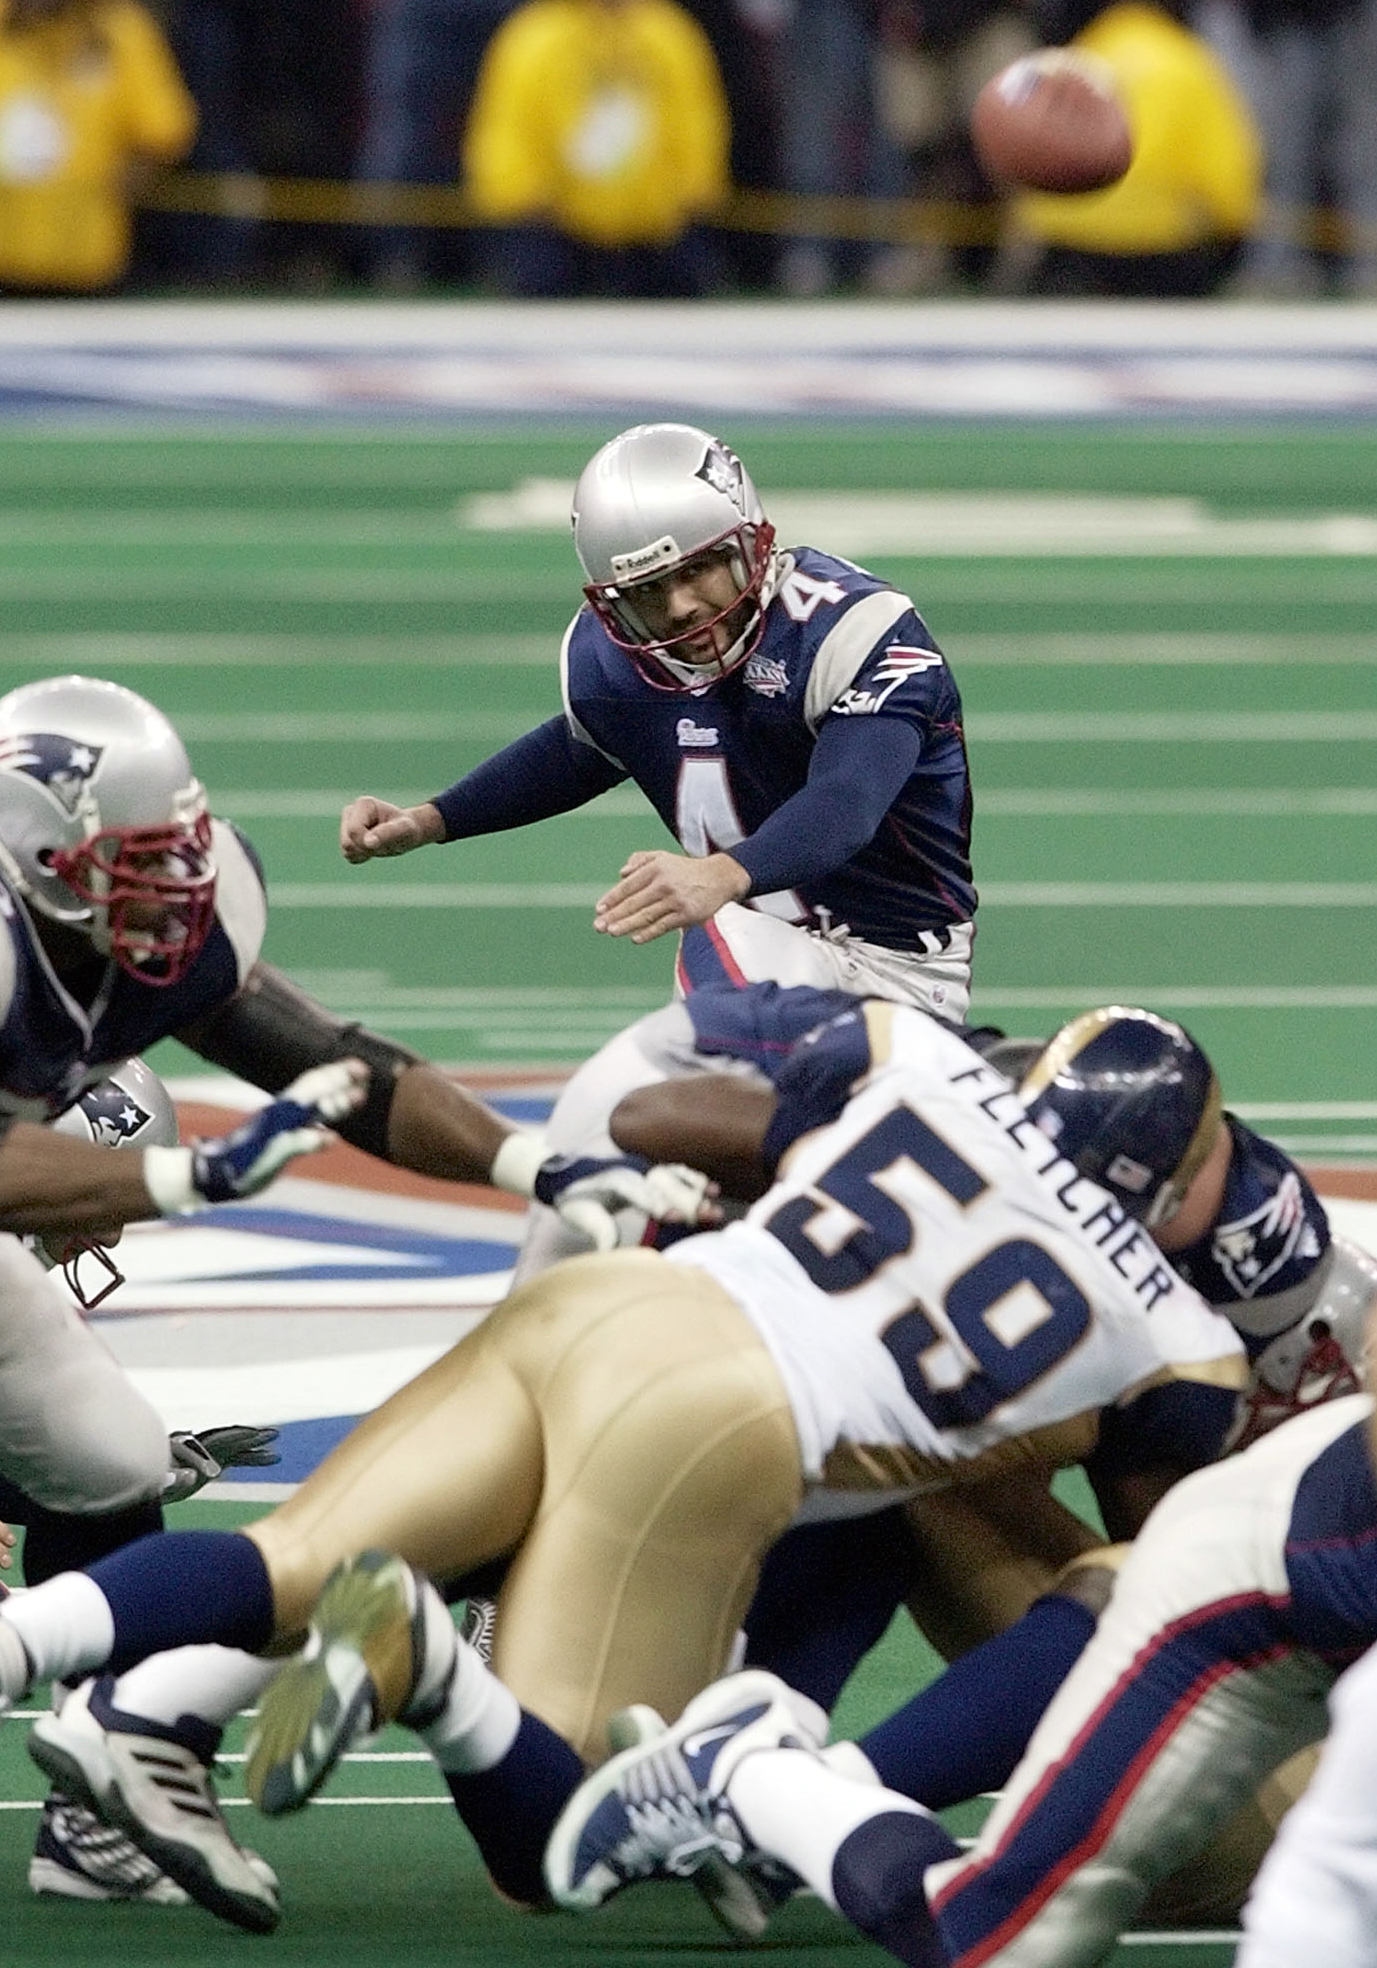 FILE - In this Feb. 3, 2002, file photo, New England Patriots kicker Adam Vinatieri kicks the game-winning 48-yard field goal in the final seconds to beat the St. Louis Rams 20-17 in Super Bowl XXXVI in New Orleans. When the Super Bowl comes down to the k